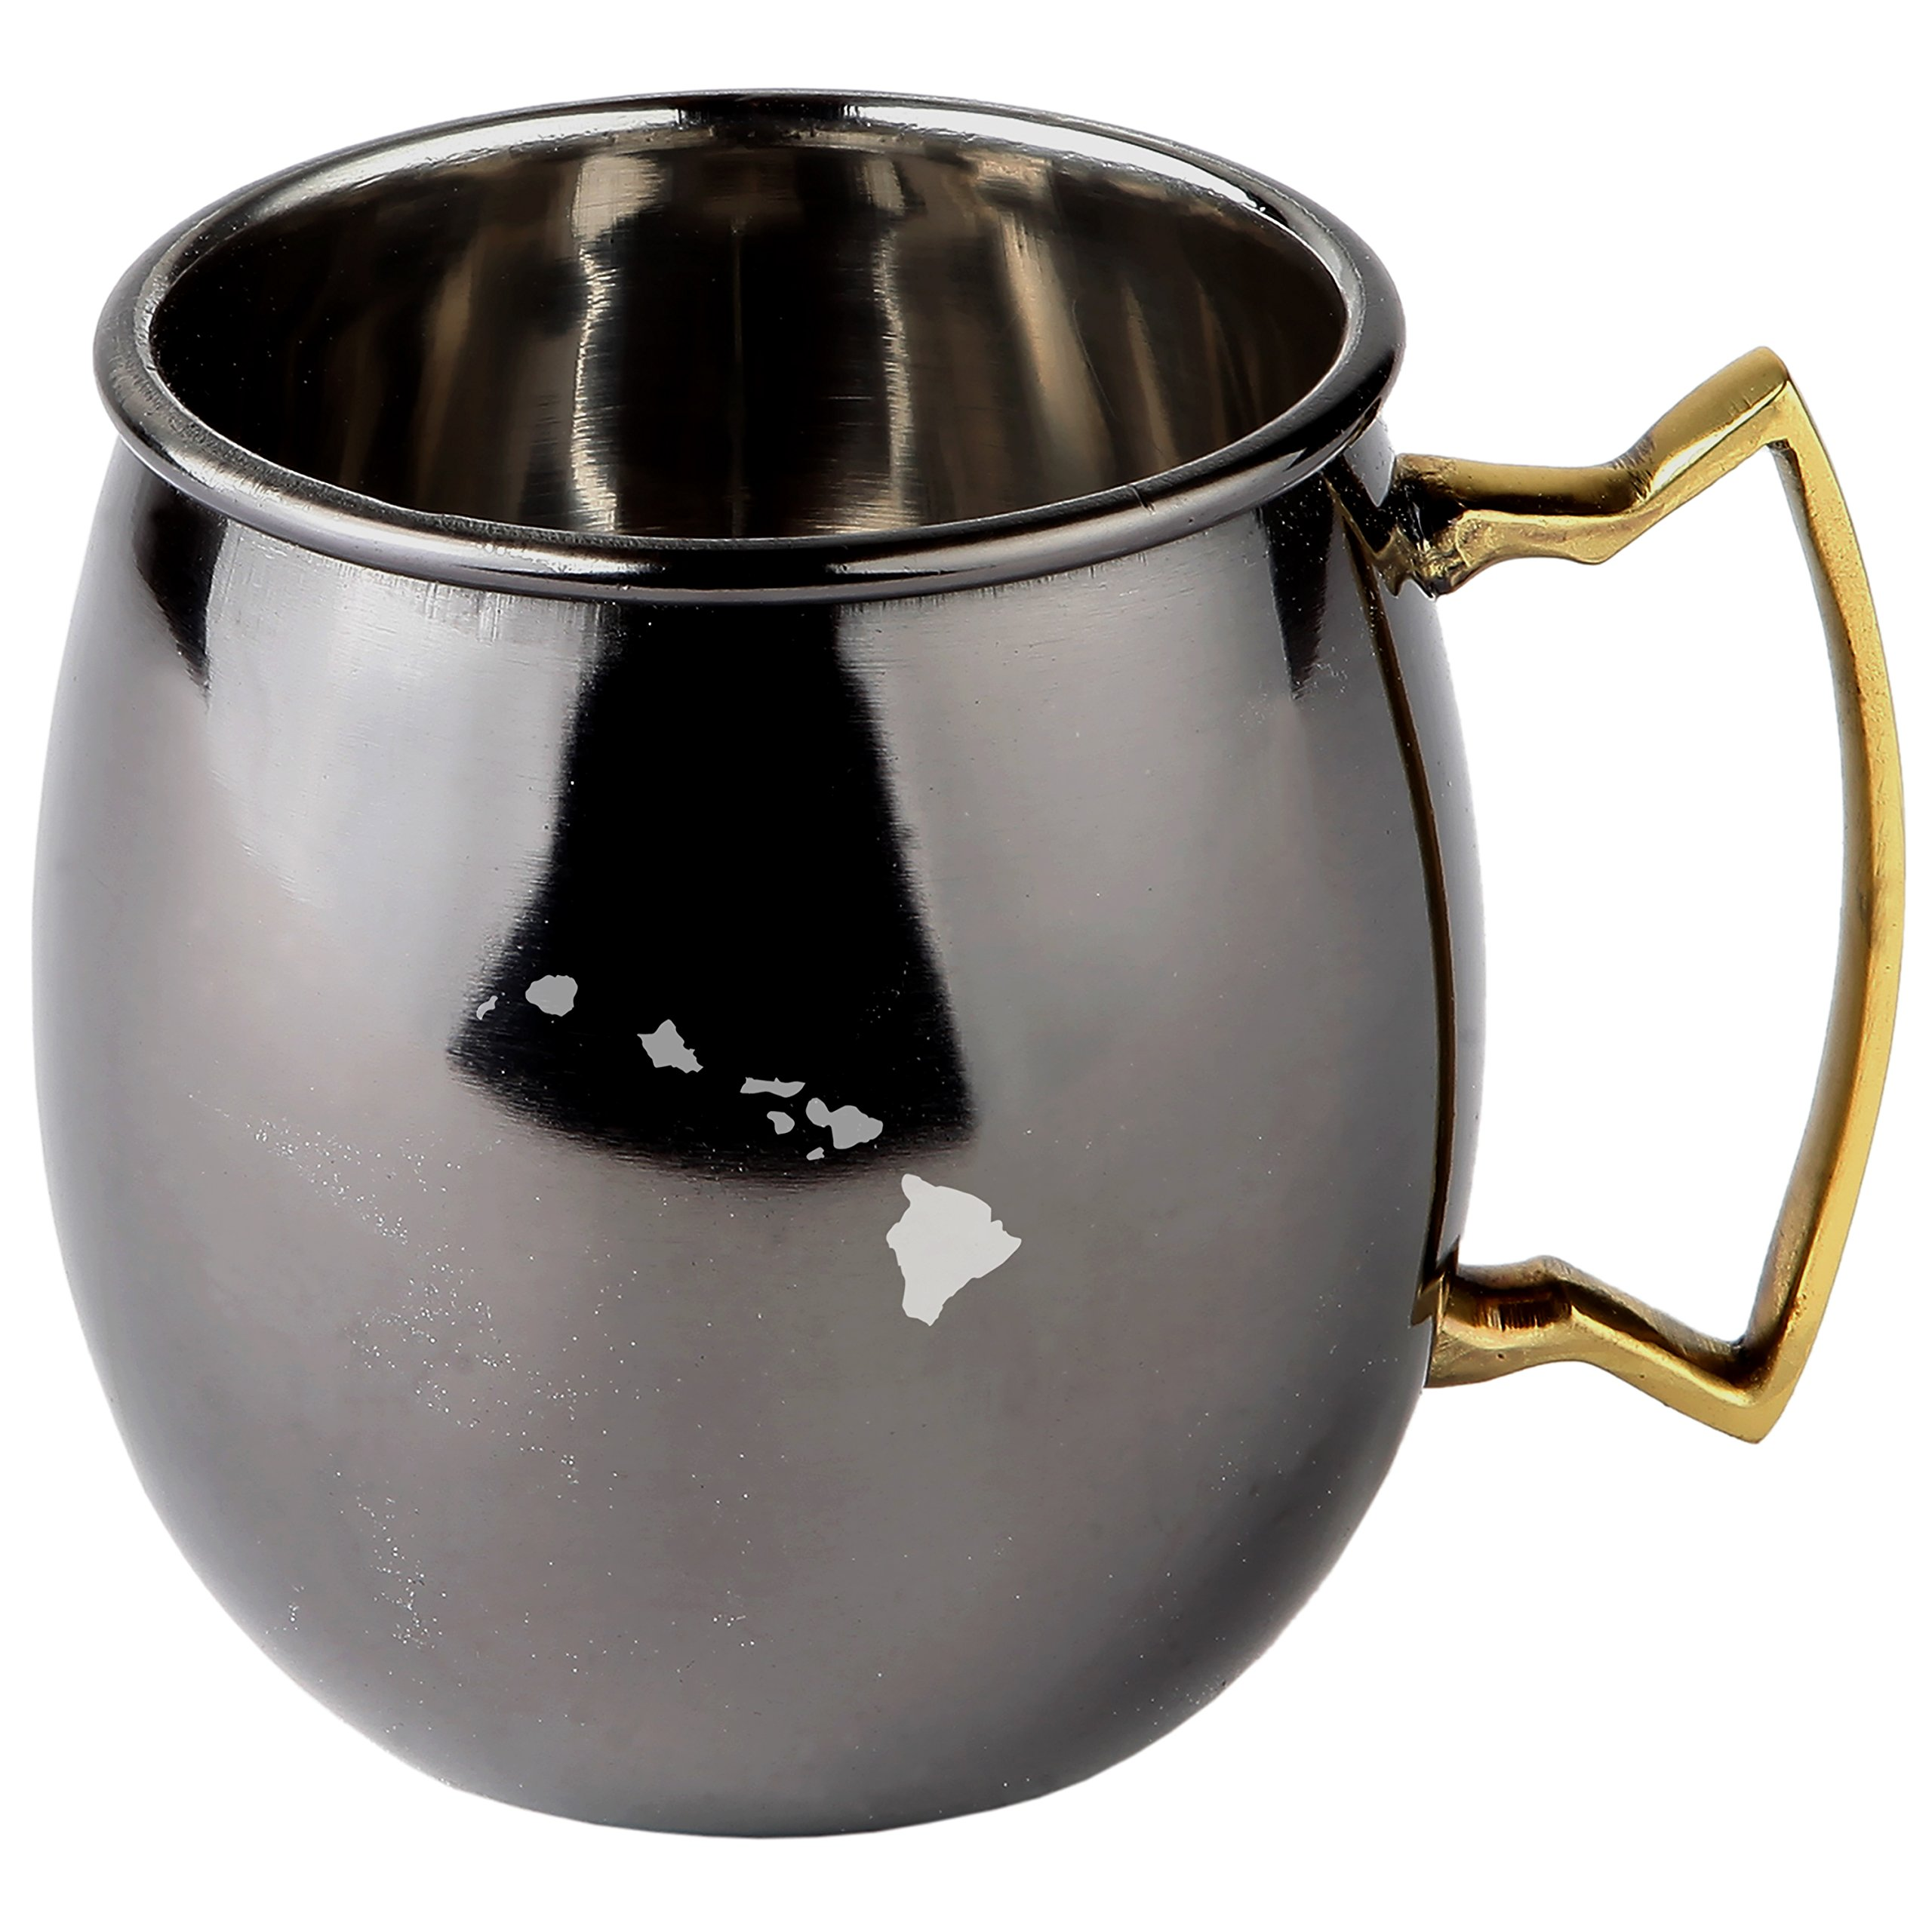 Hawaii Stainless Steel Moscow Mule Mugs With Black Mirror Finish - Copper Plated Cocktail Mug - 16 Oz Moscow Mule Mug Gift